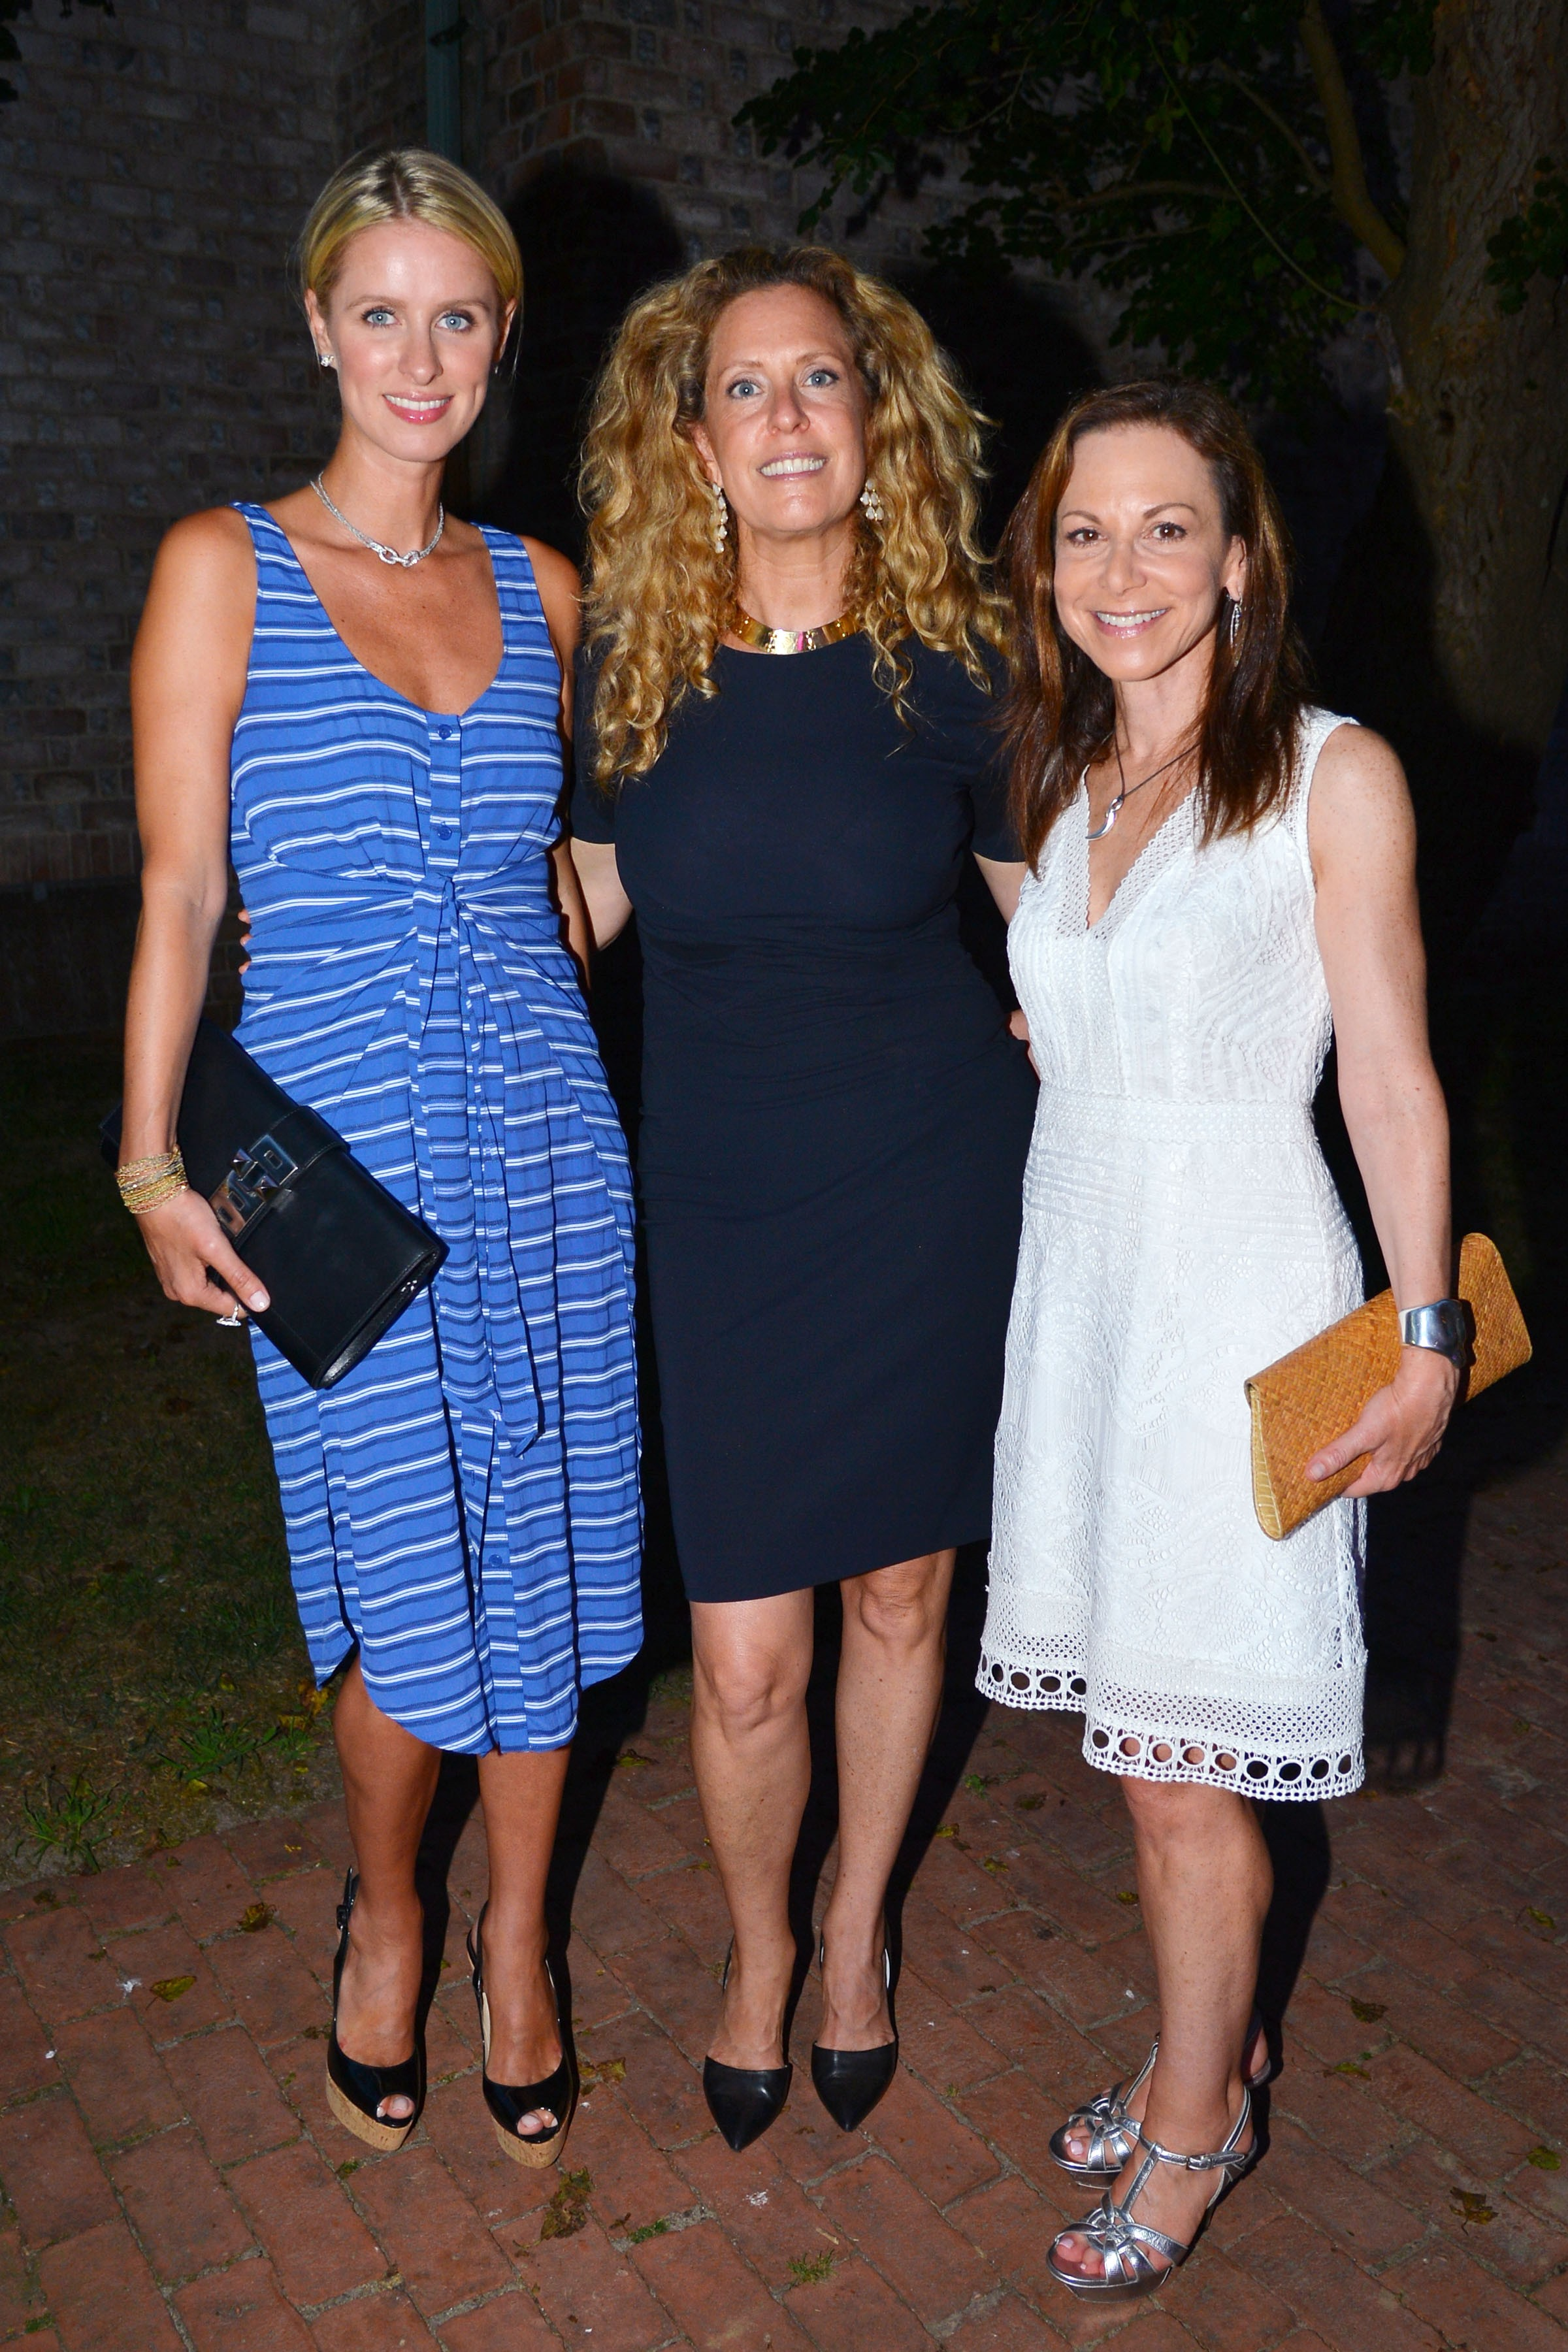 new party diary southampton arts center hosts second lise evans nicky hilton rothschild simone levinson bettina zilkha southampton arts center second annual